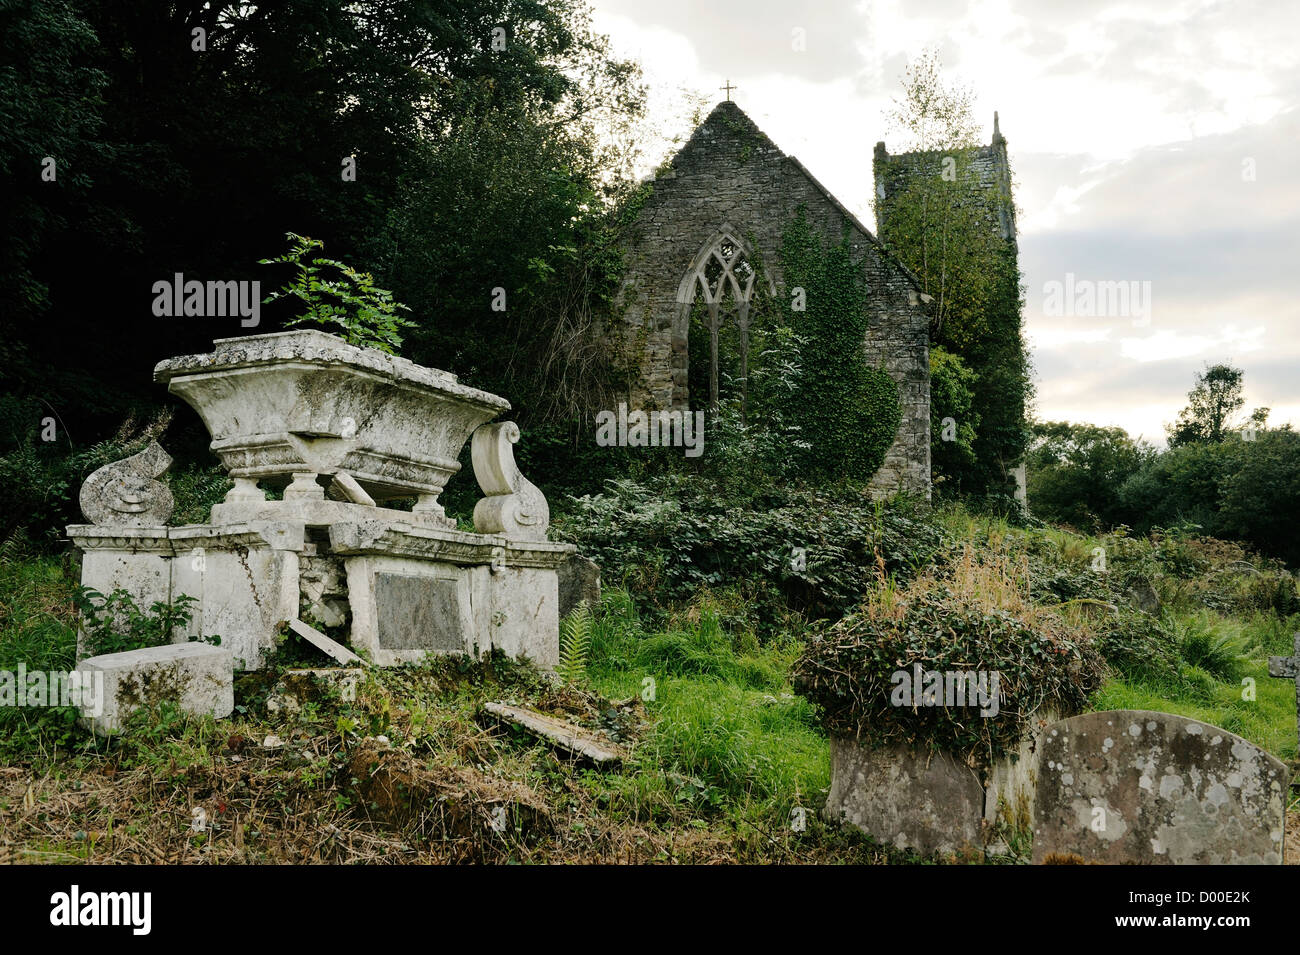 Tintern, Wye Valley, Monmouthshire, Wales, UK. Ruins of the Church of St. Mary the Virgin on Chapel Hill above Tintern - Stock Image